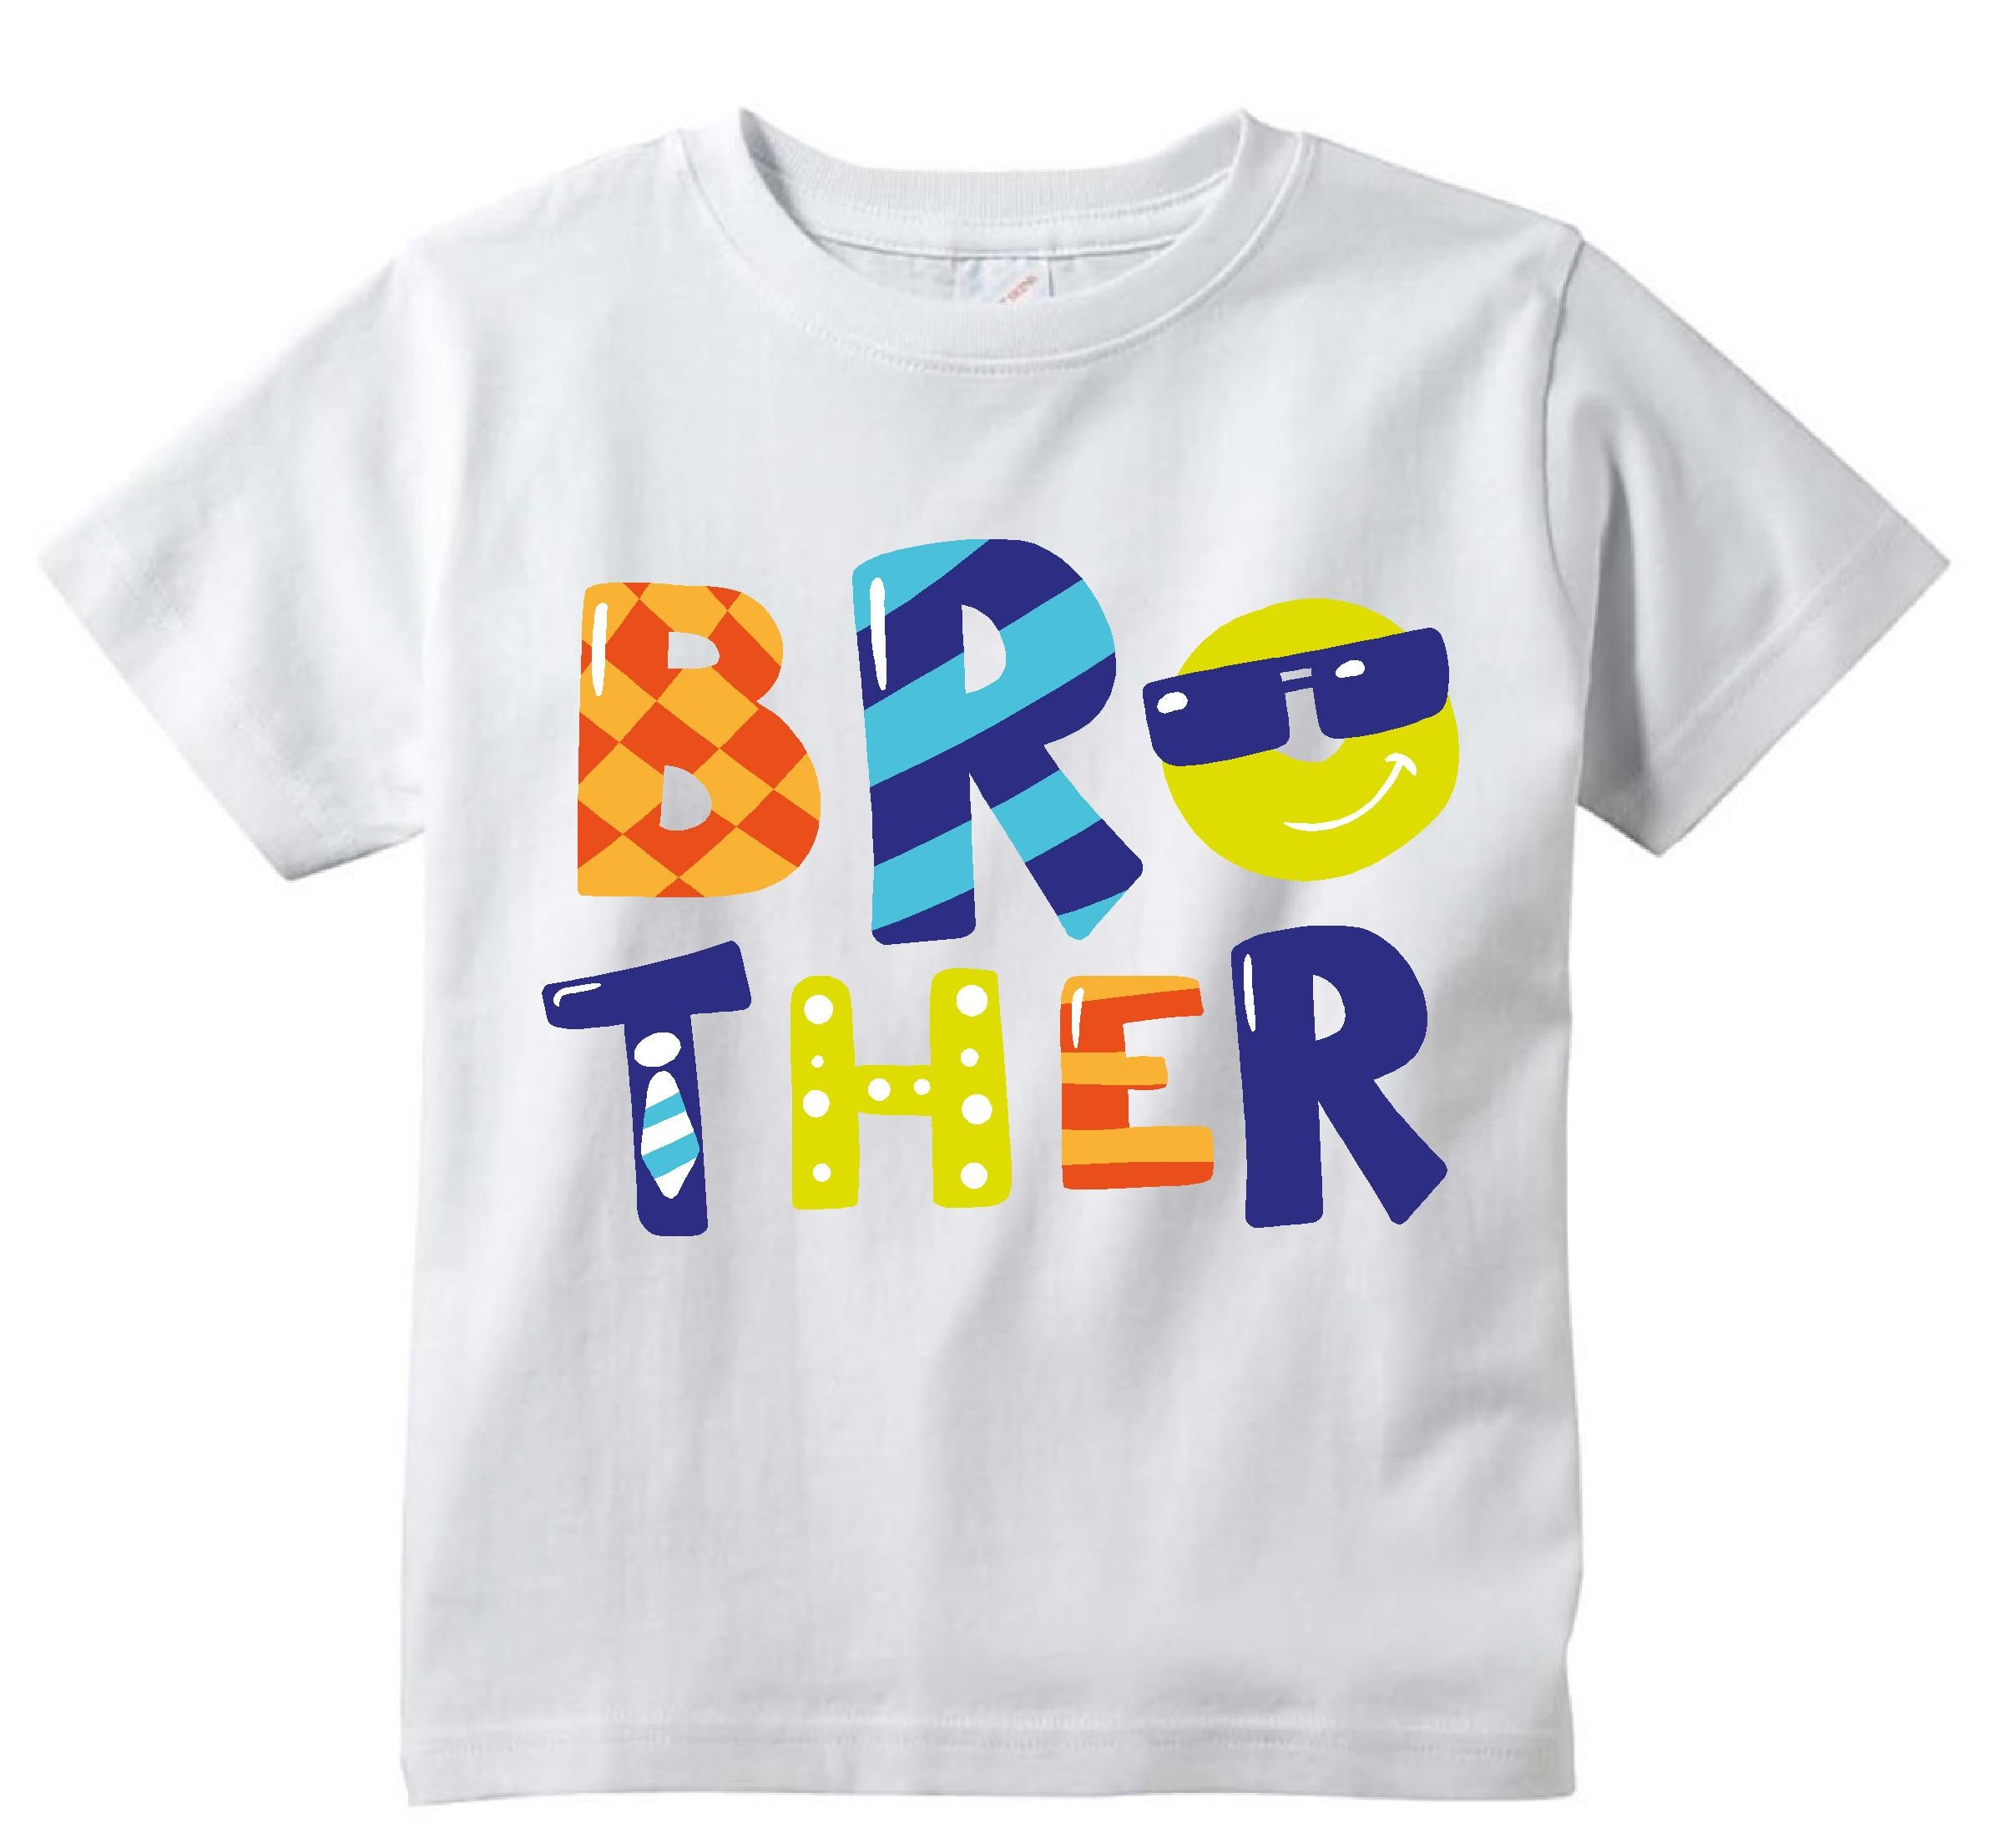 Baby boys Brother cute baby clothes tee shirt infant clothing – Baby